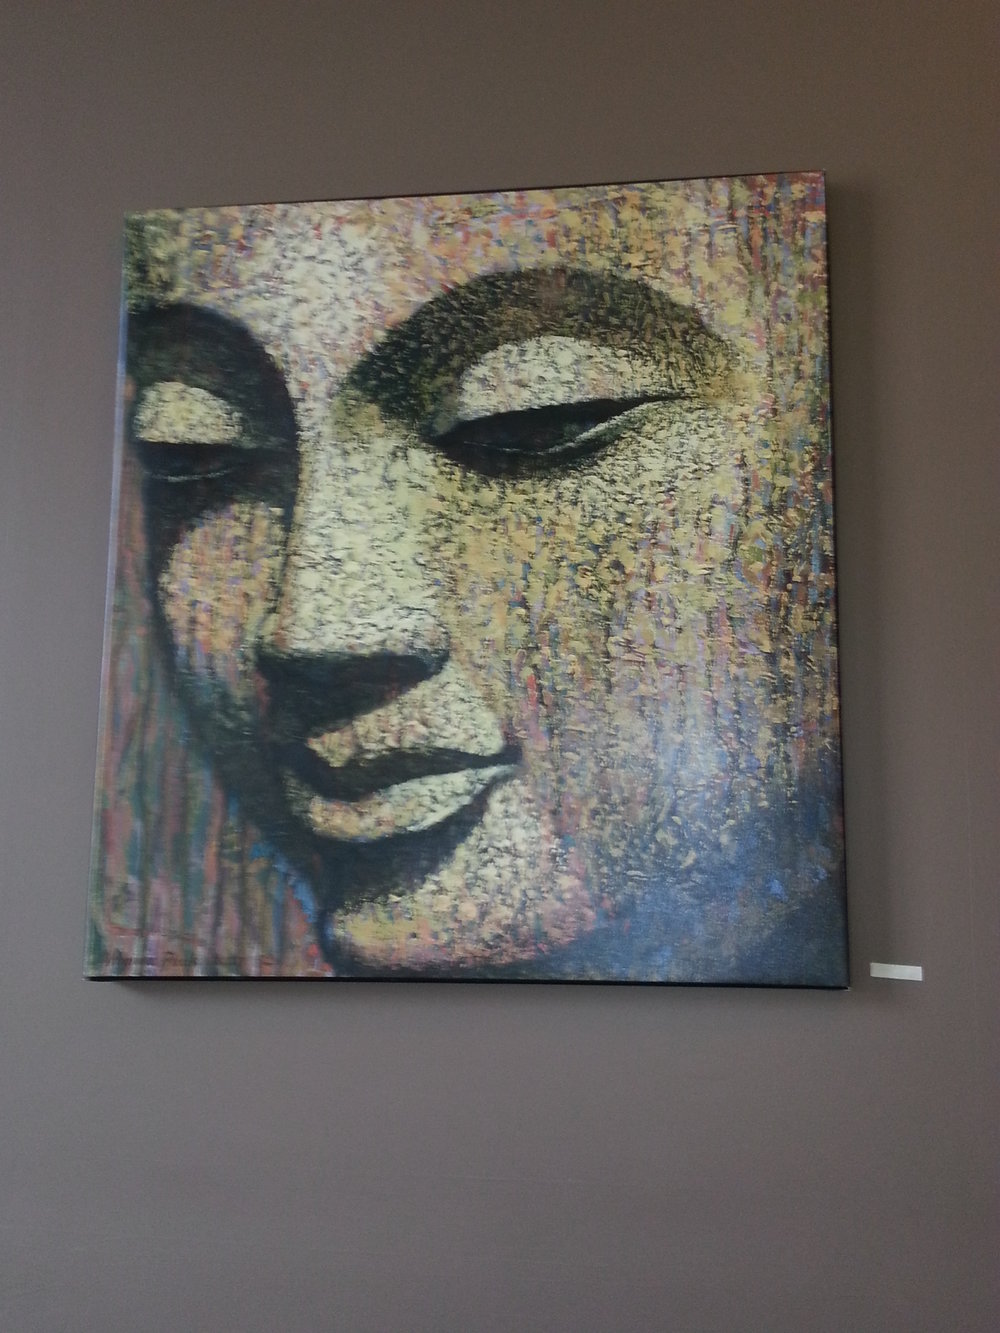 Dining Room Buddha at Kripalu